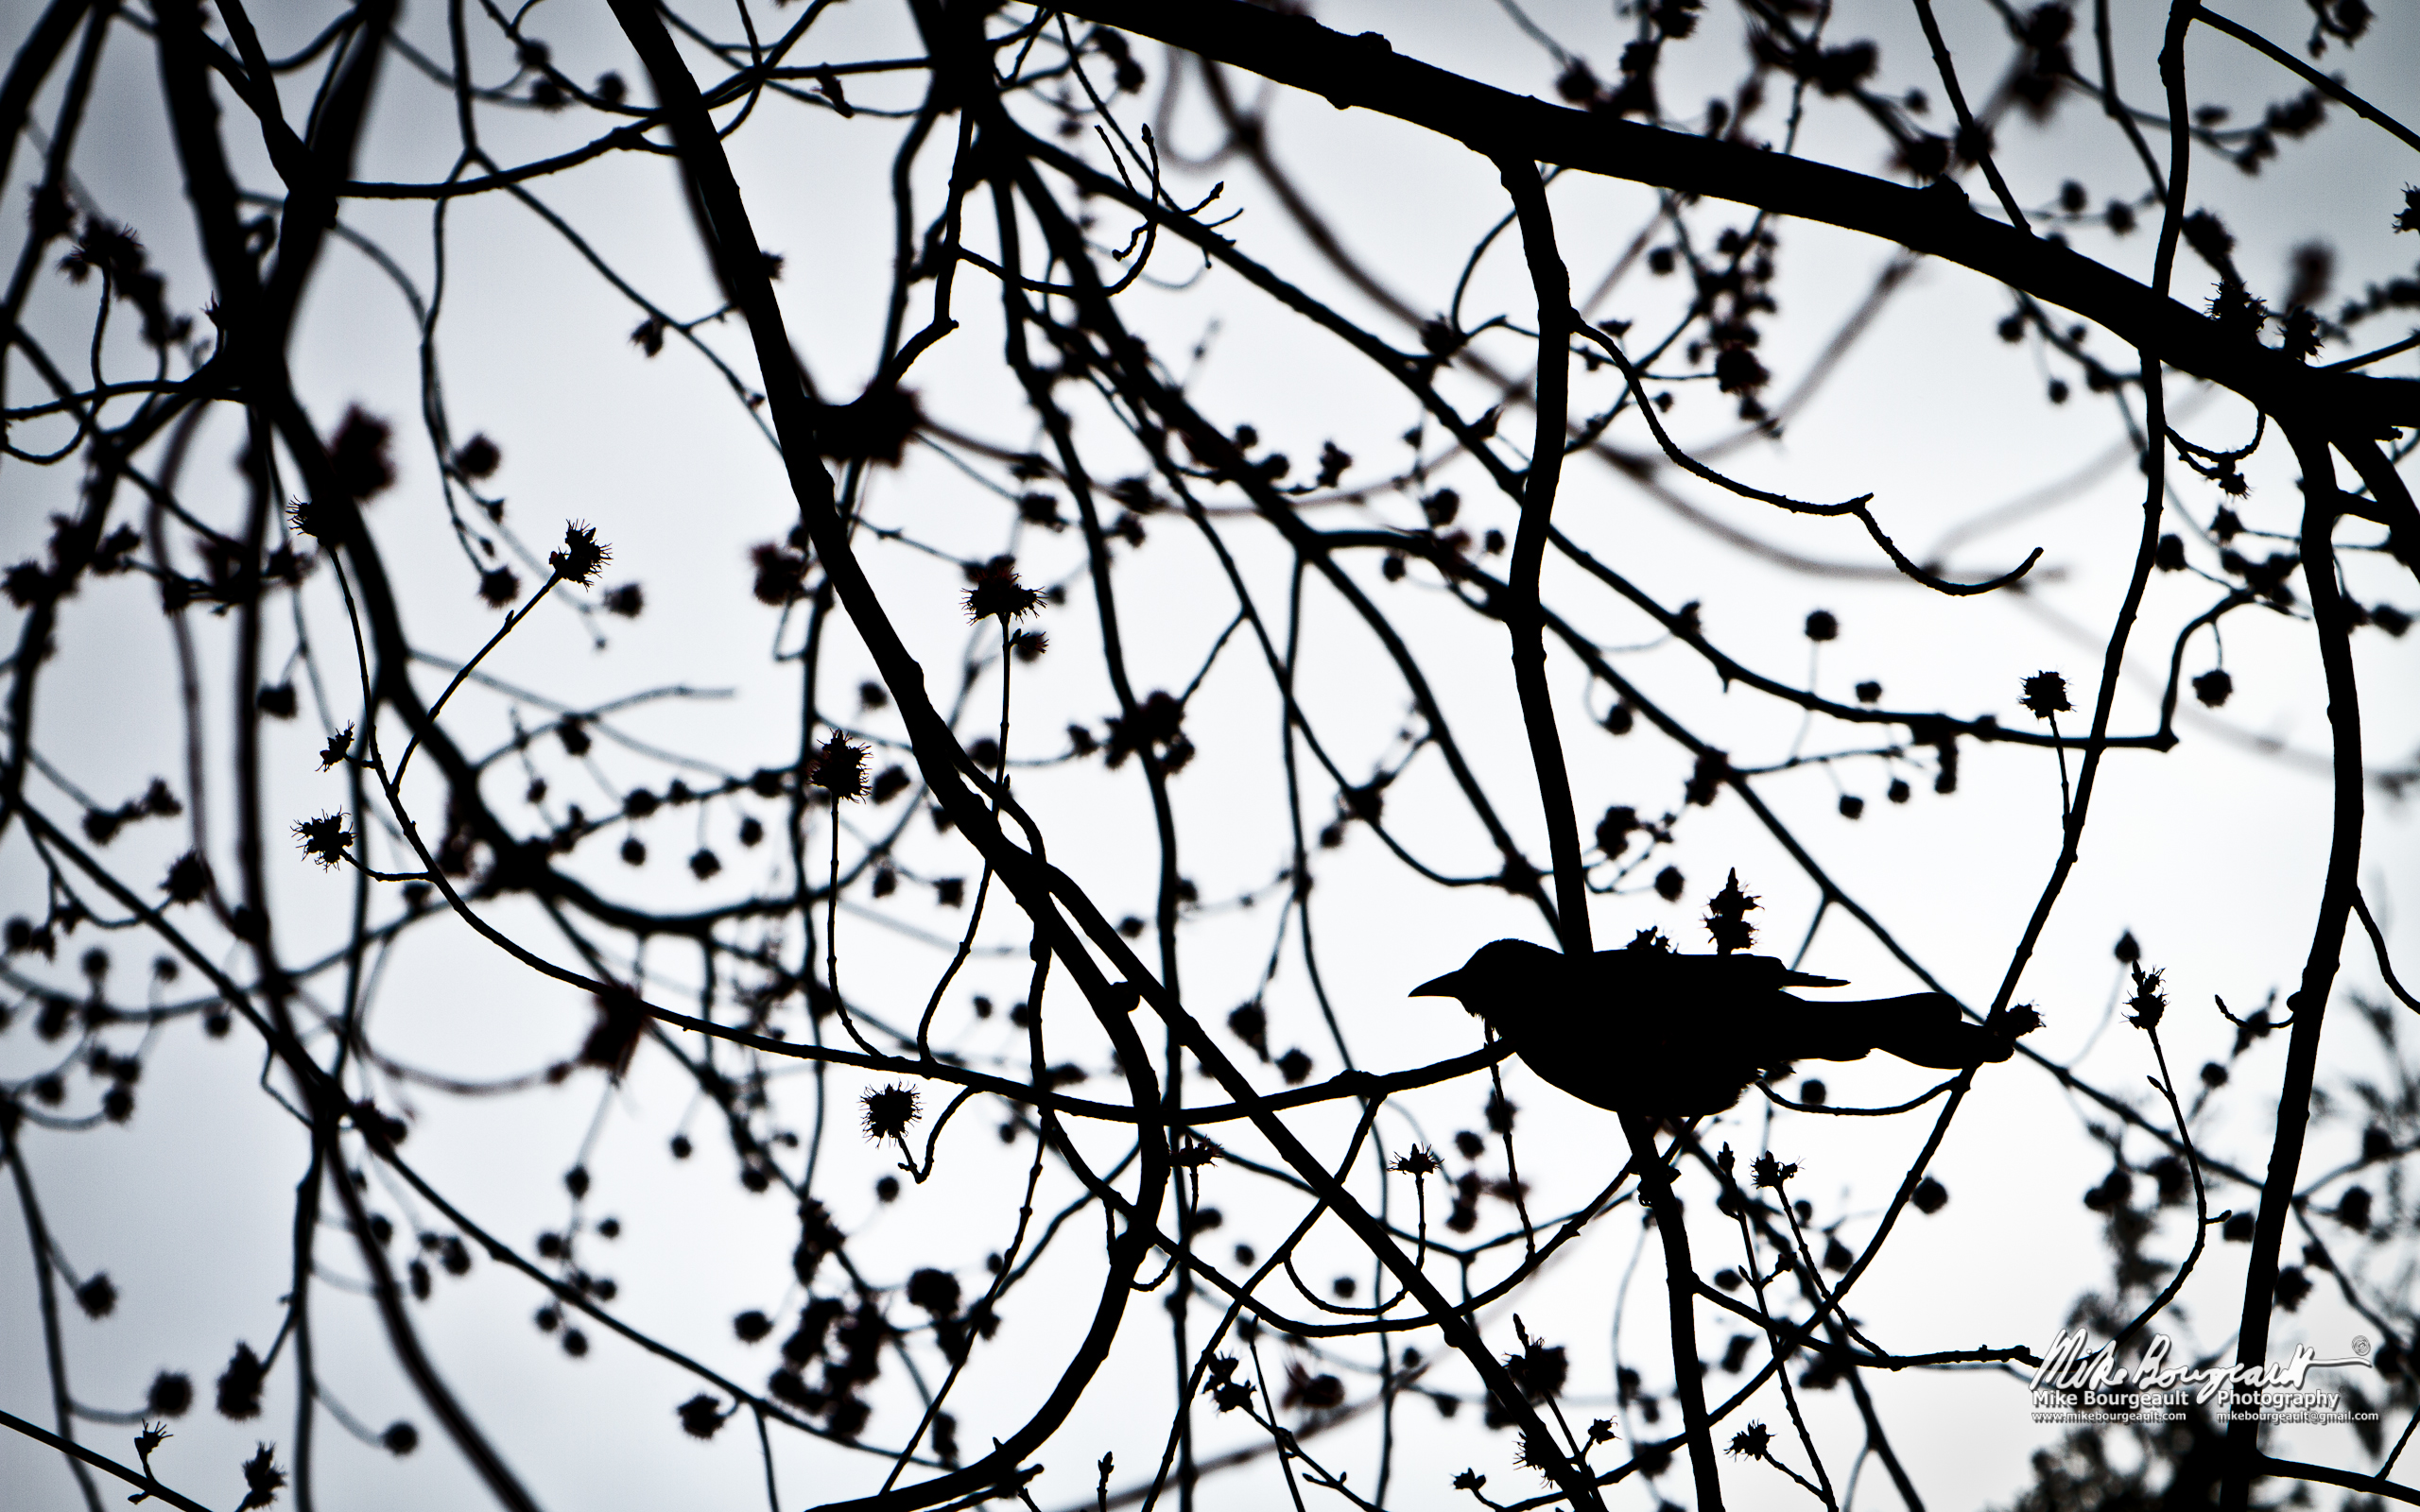 Make Your Own Hd Wallpaper June 20 2012 Bird In A Tree Mike Bourgeault Photography